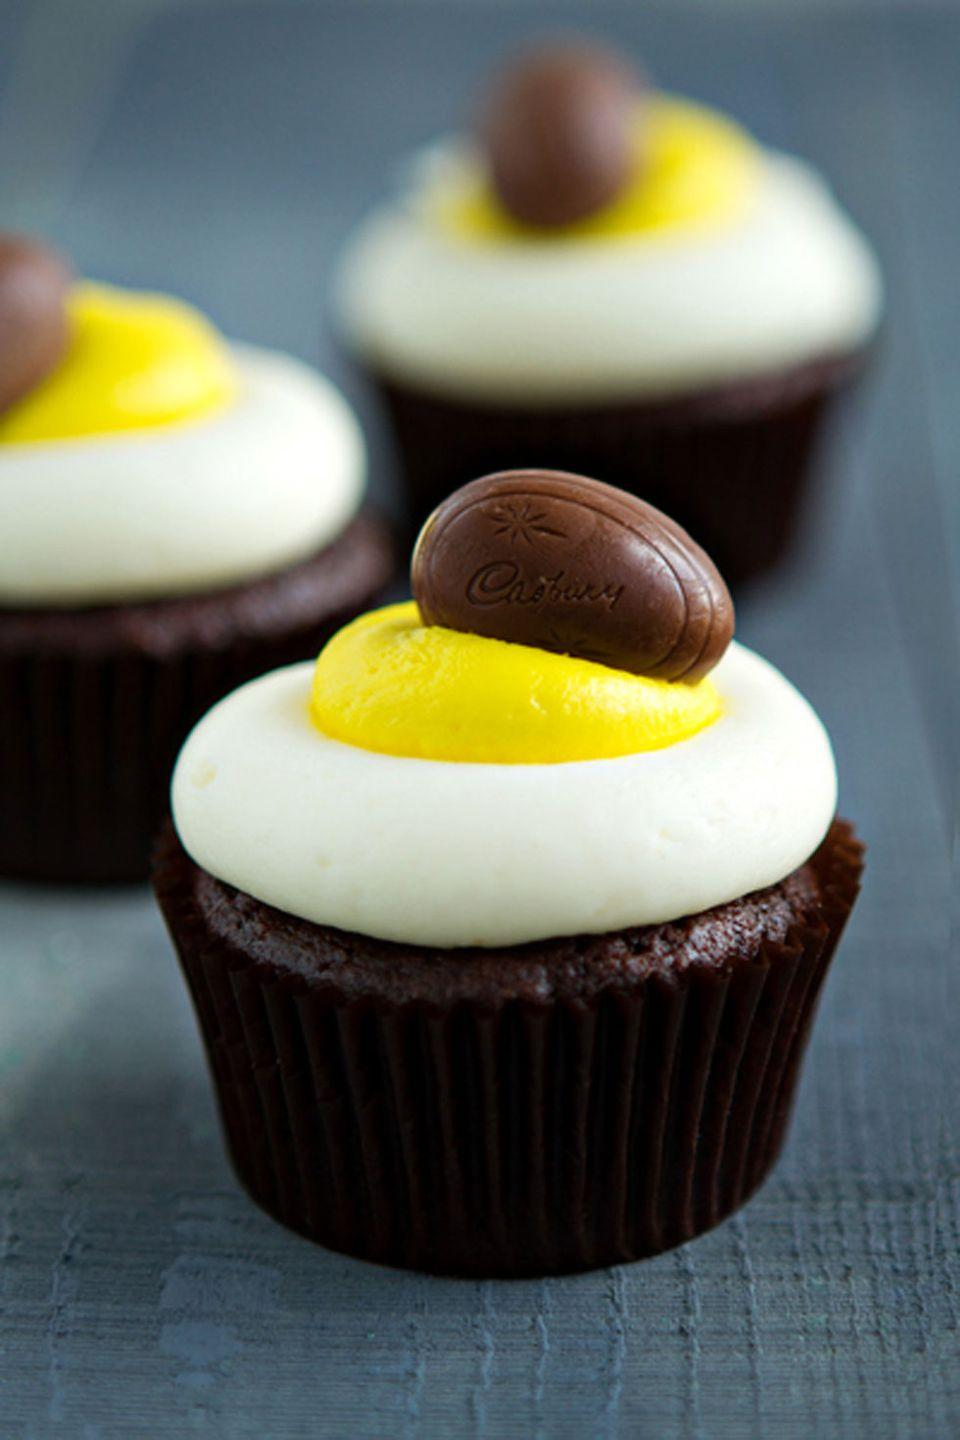 """<p>One thing is for sure: Easter just wouldn't feel like Easter without a Cadbury Creme Egg to top off your celebration.</p><p>Get the recipe at <a href=""""http://www.mybakingaddiction.com/cadbury-creme-egg-cupcakes/"""" rel=""""nofollow noopener"""" target=""""_blank"""" data-ylk=""""slk:My Baking Addiction"""" class=""""link rapid-noclick-resp"""">My Baking Addiction</a>.</p>"""